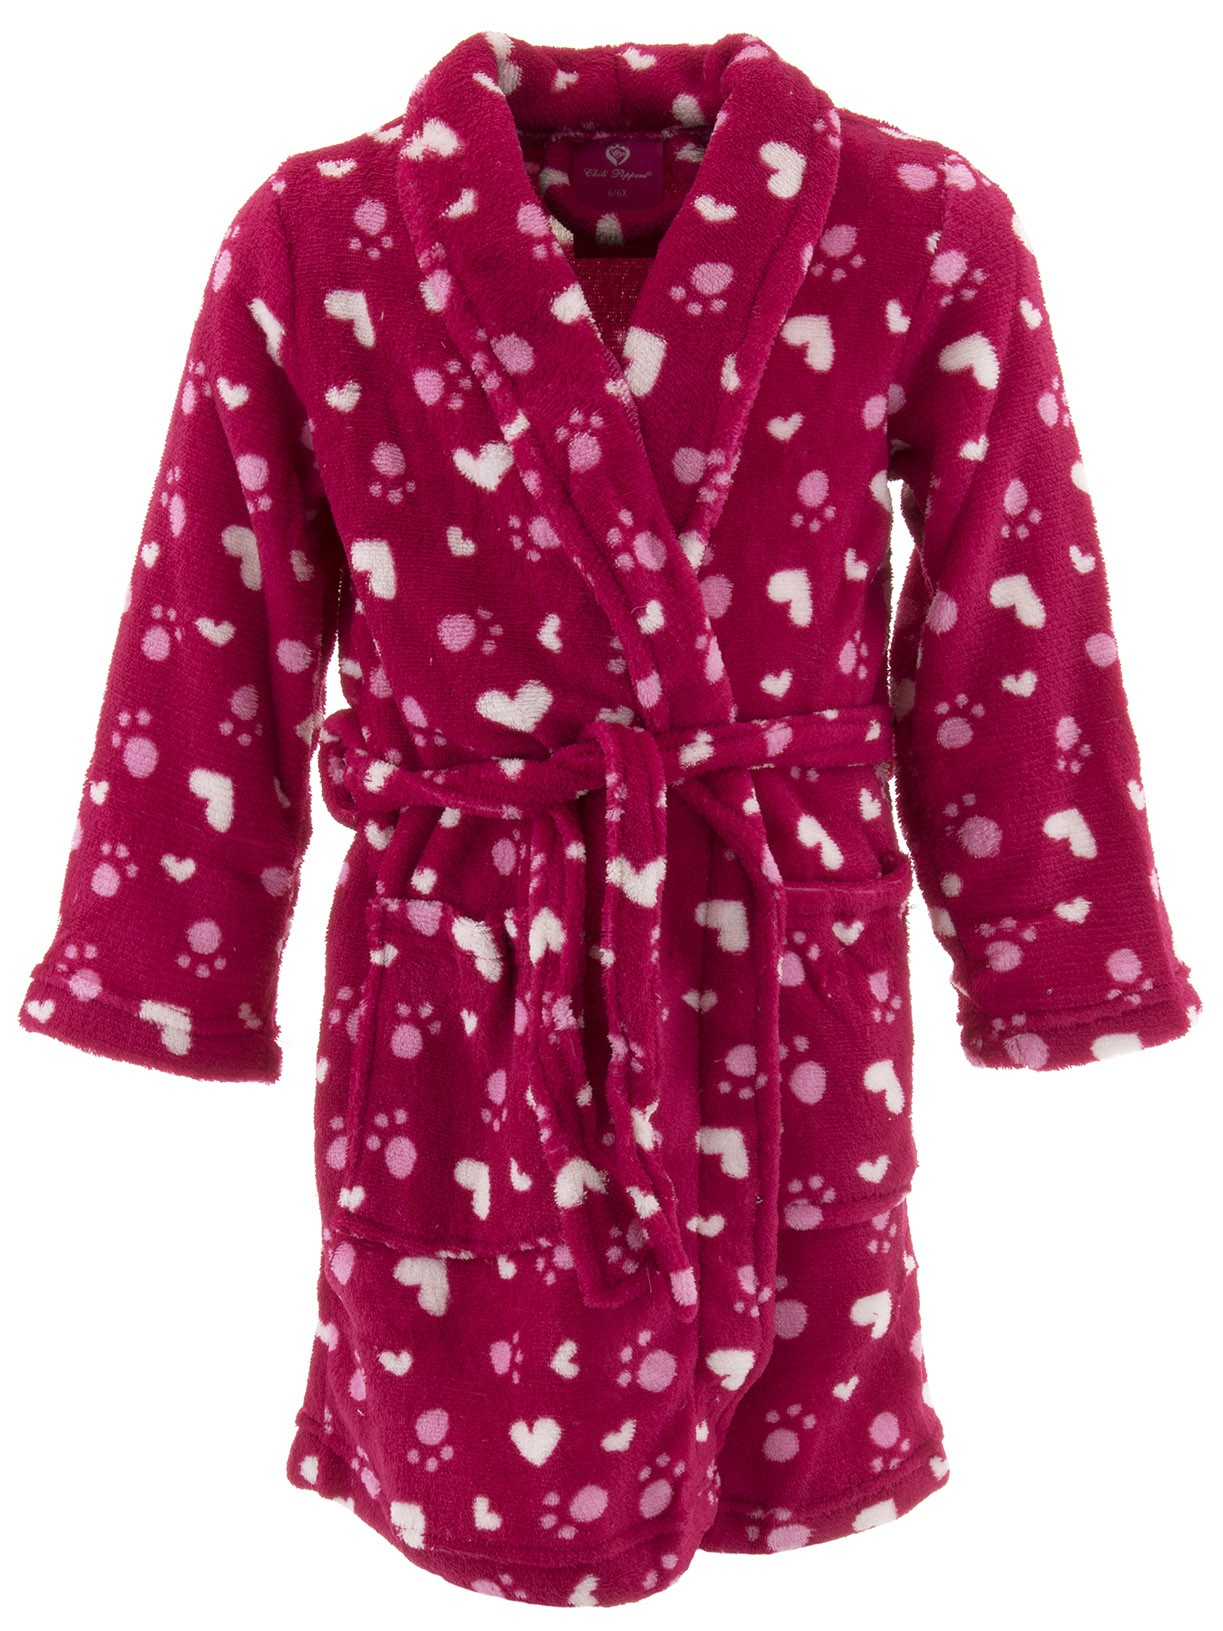 Chili Peppers Girls Red Hearts Paw Prints Fleece Bathrobe